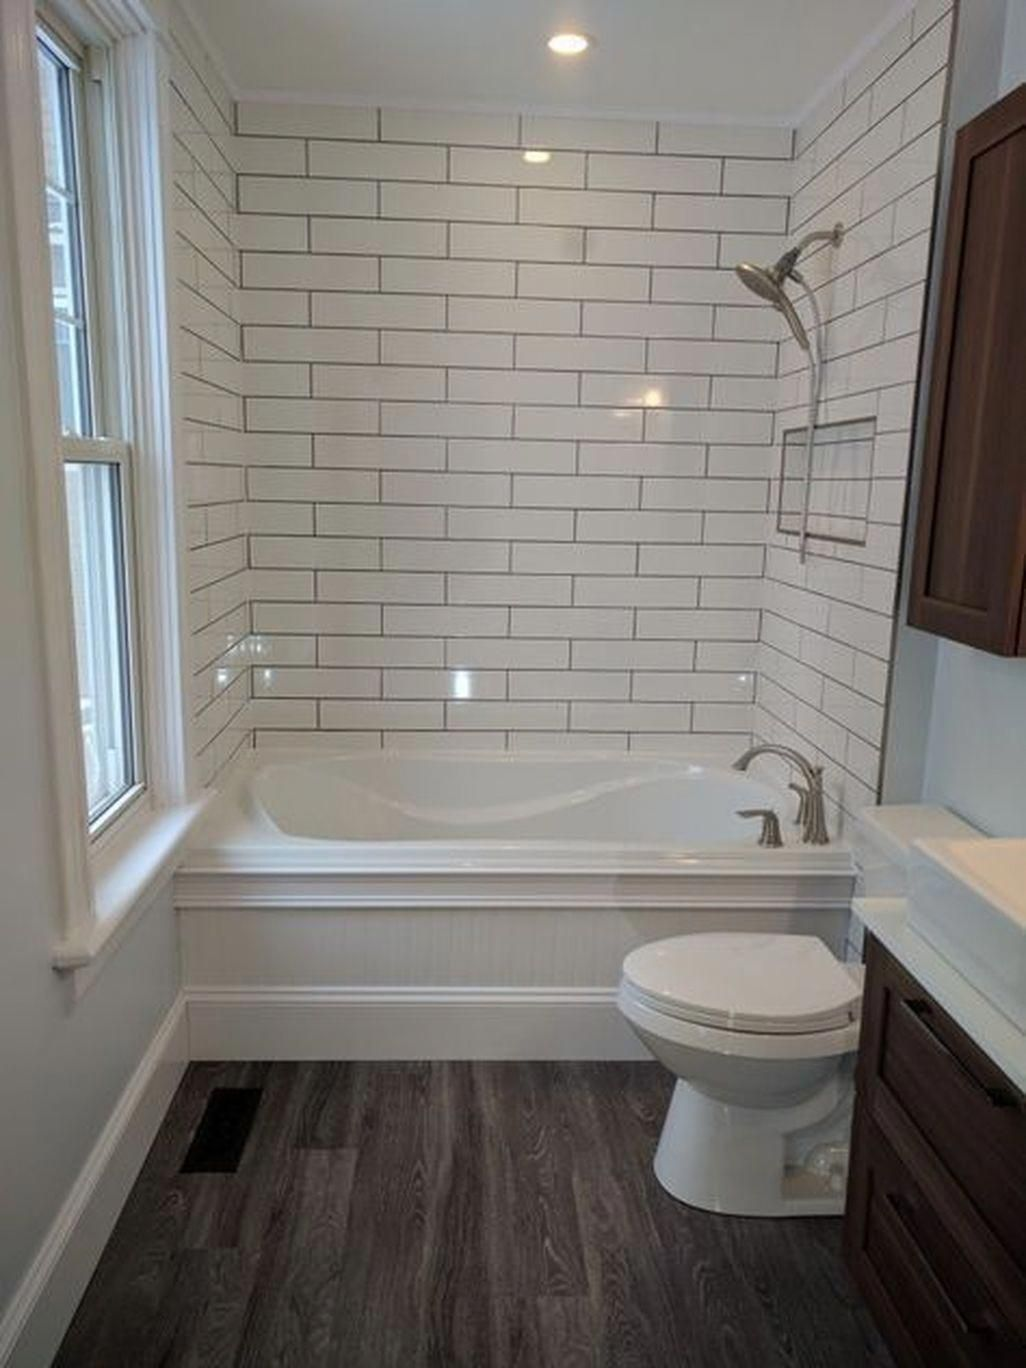 When it pertains to things like flooring, ask your subcontractor if